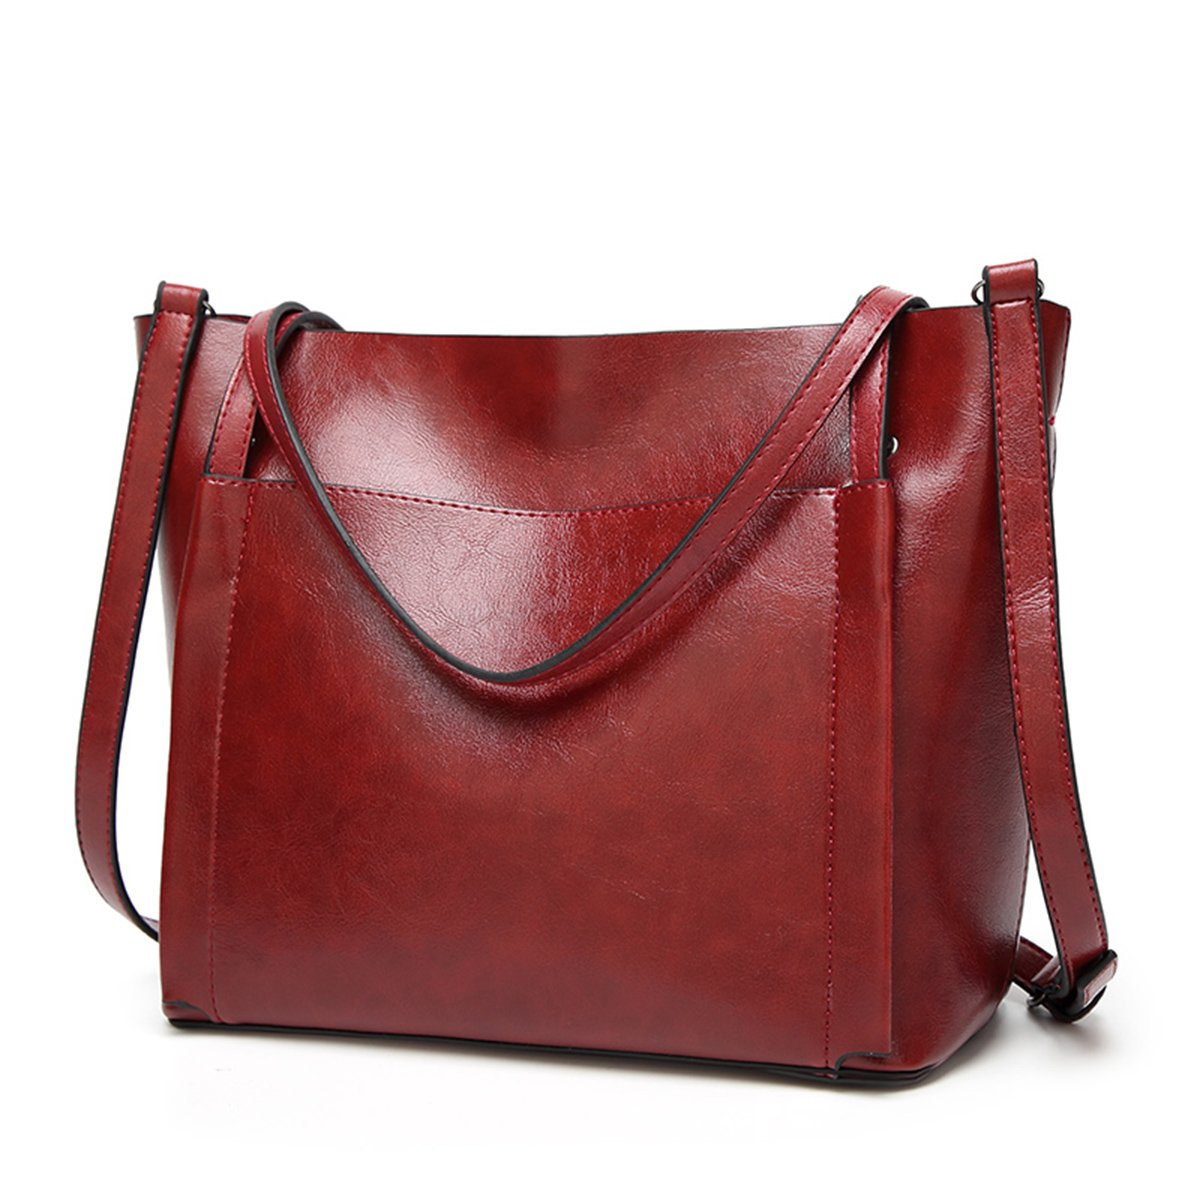 QIN LX Lady Leather Shopping Messenger Purse Top Handle Handbags Women's Shoulder Tote Satchel Bag (red)